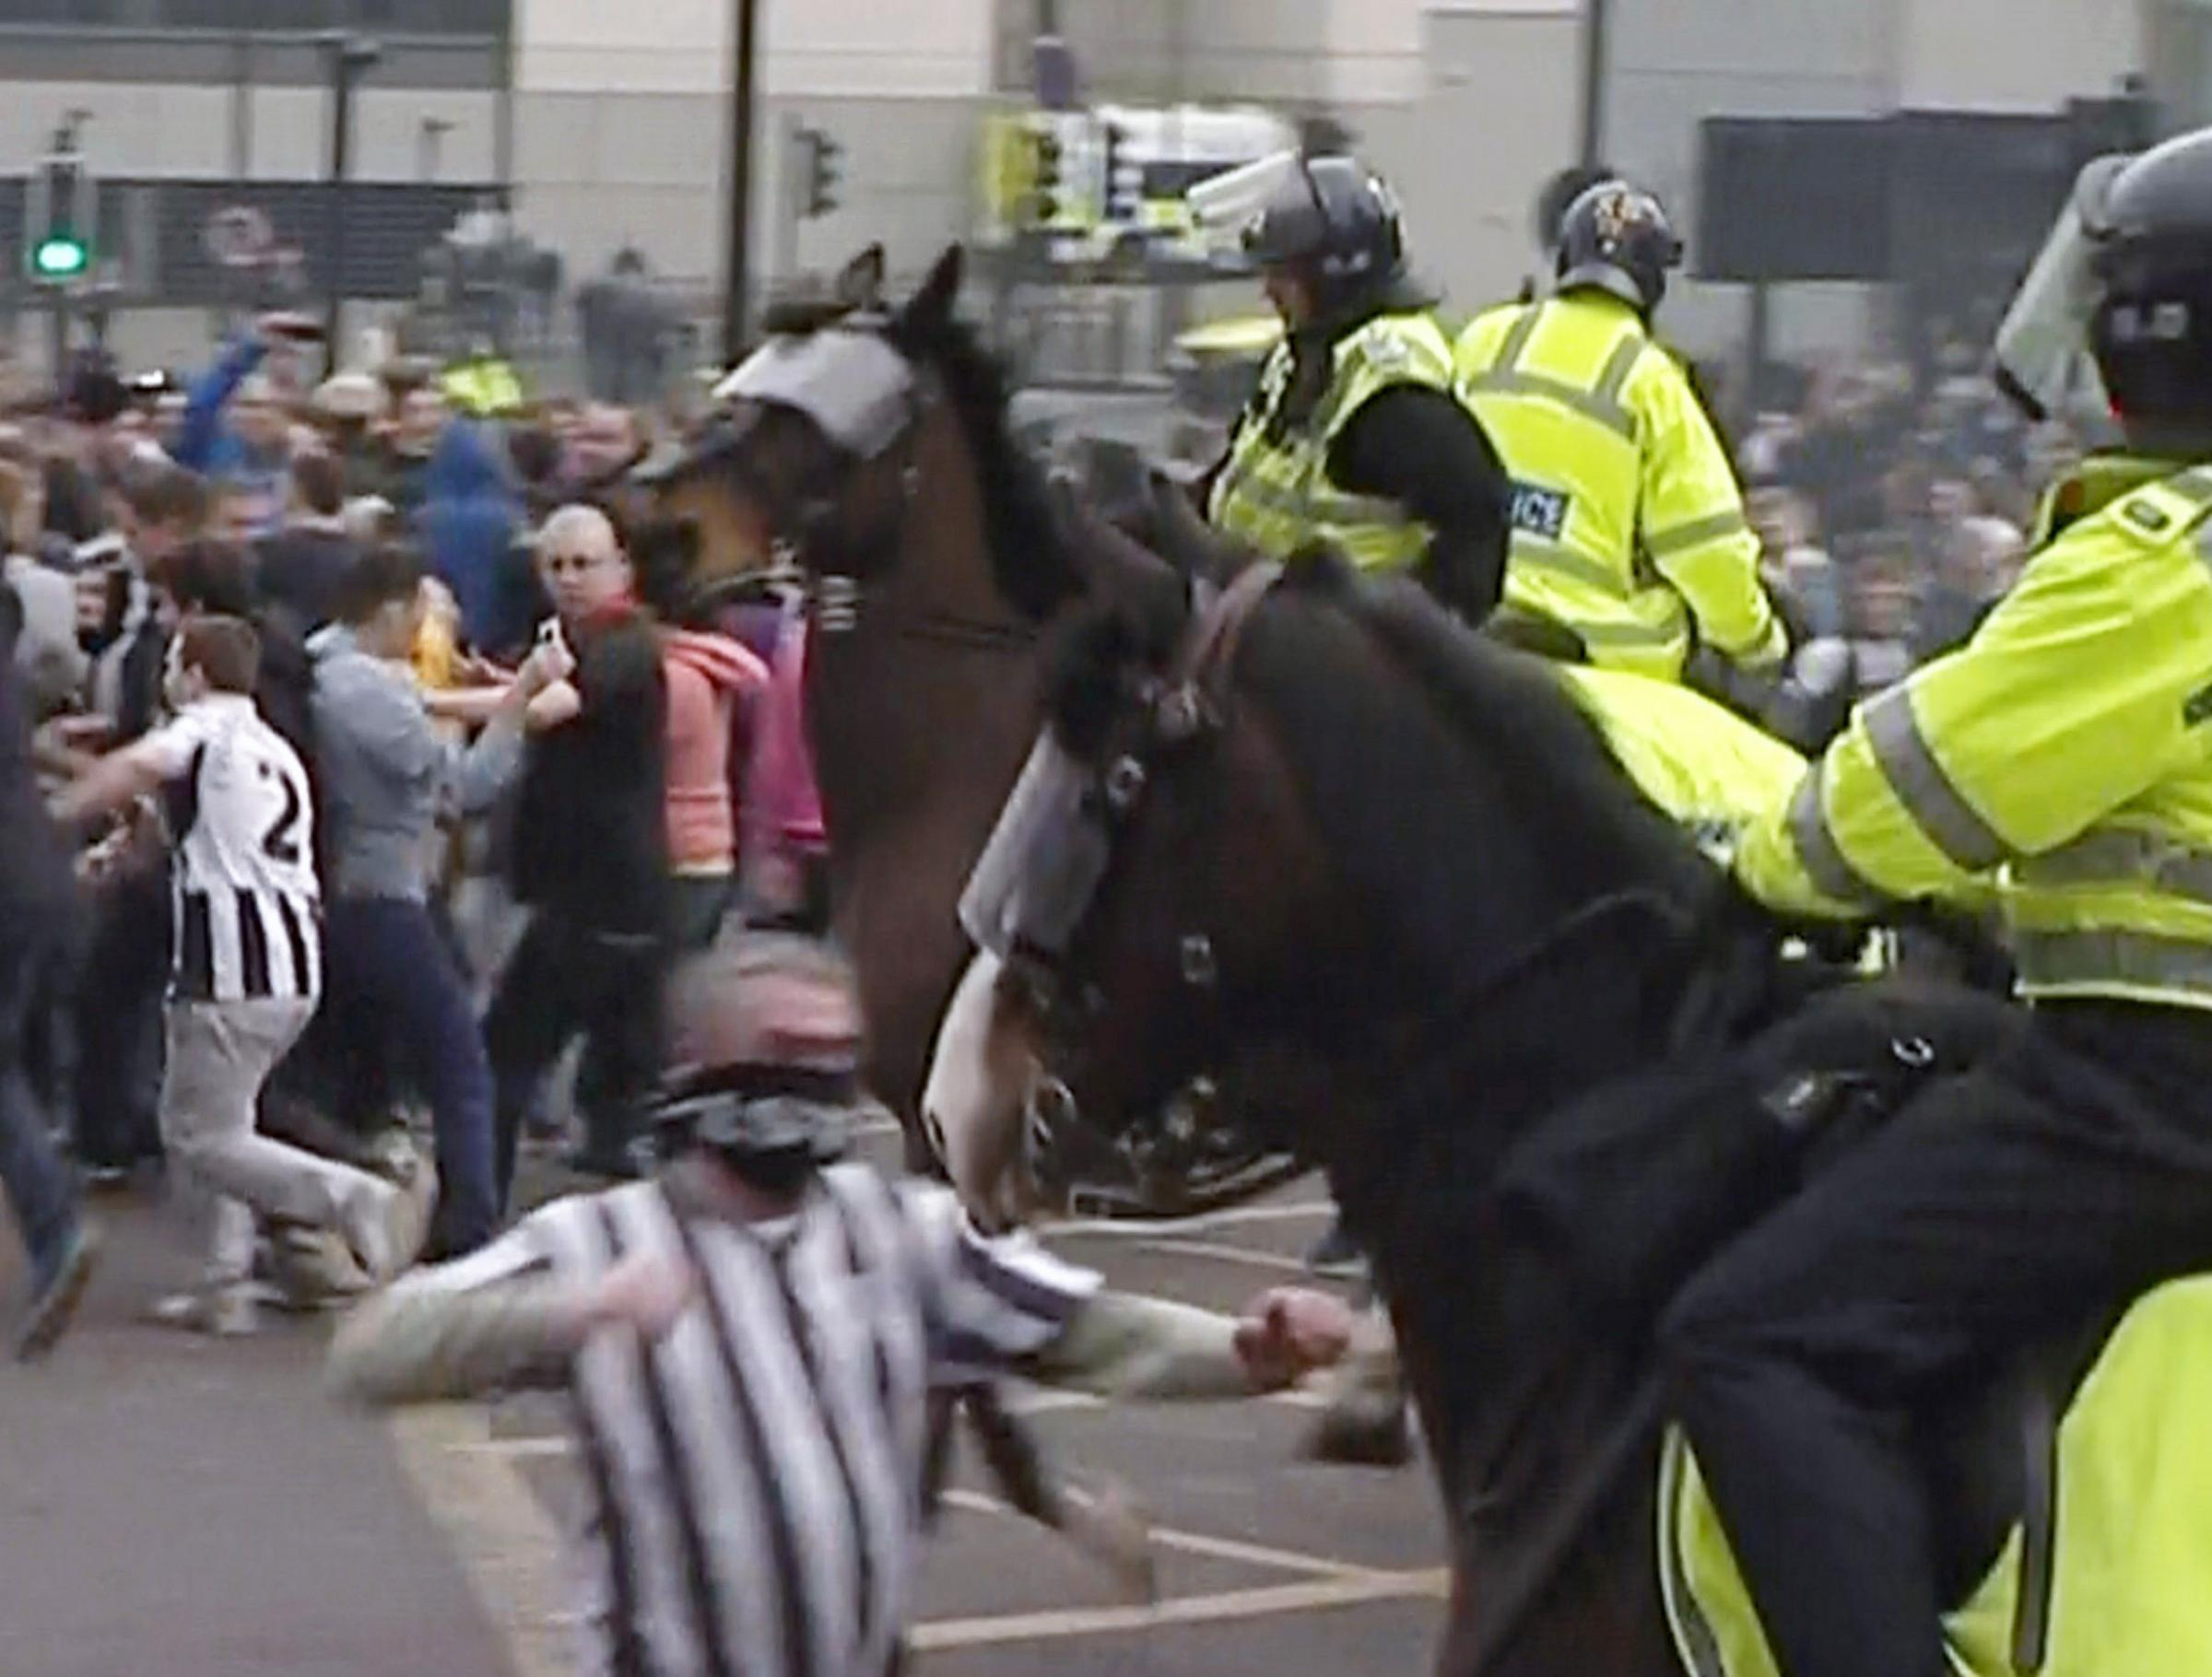 Newcastle United fan Barry Rogerson, 45, who was jailed in 2013 for punching a police horse